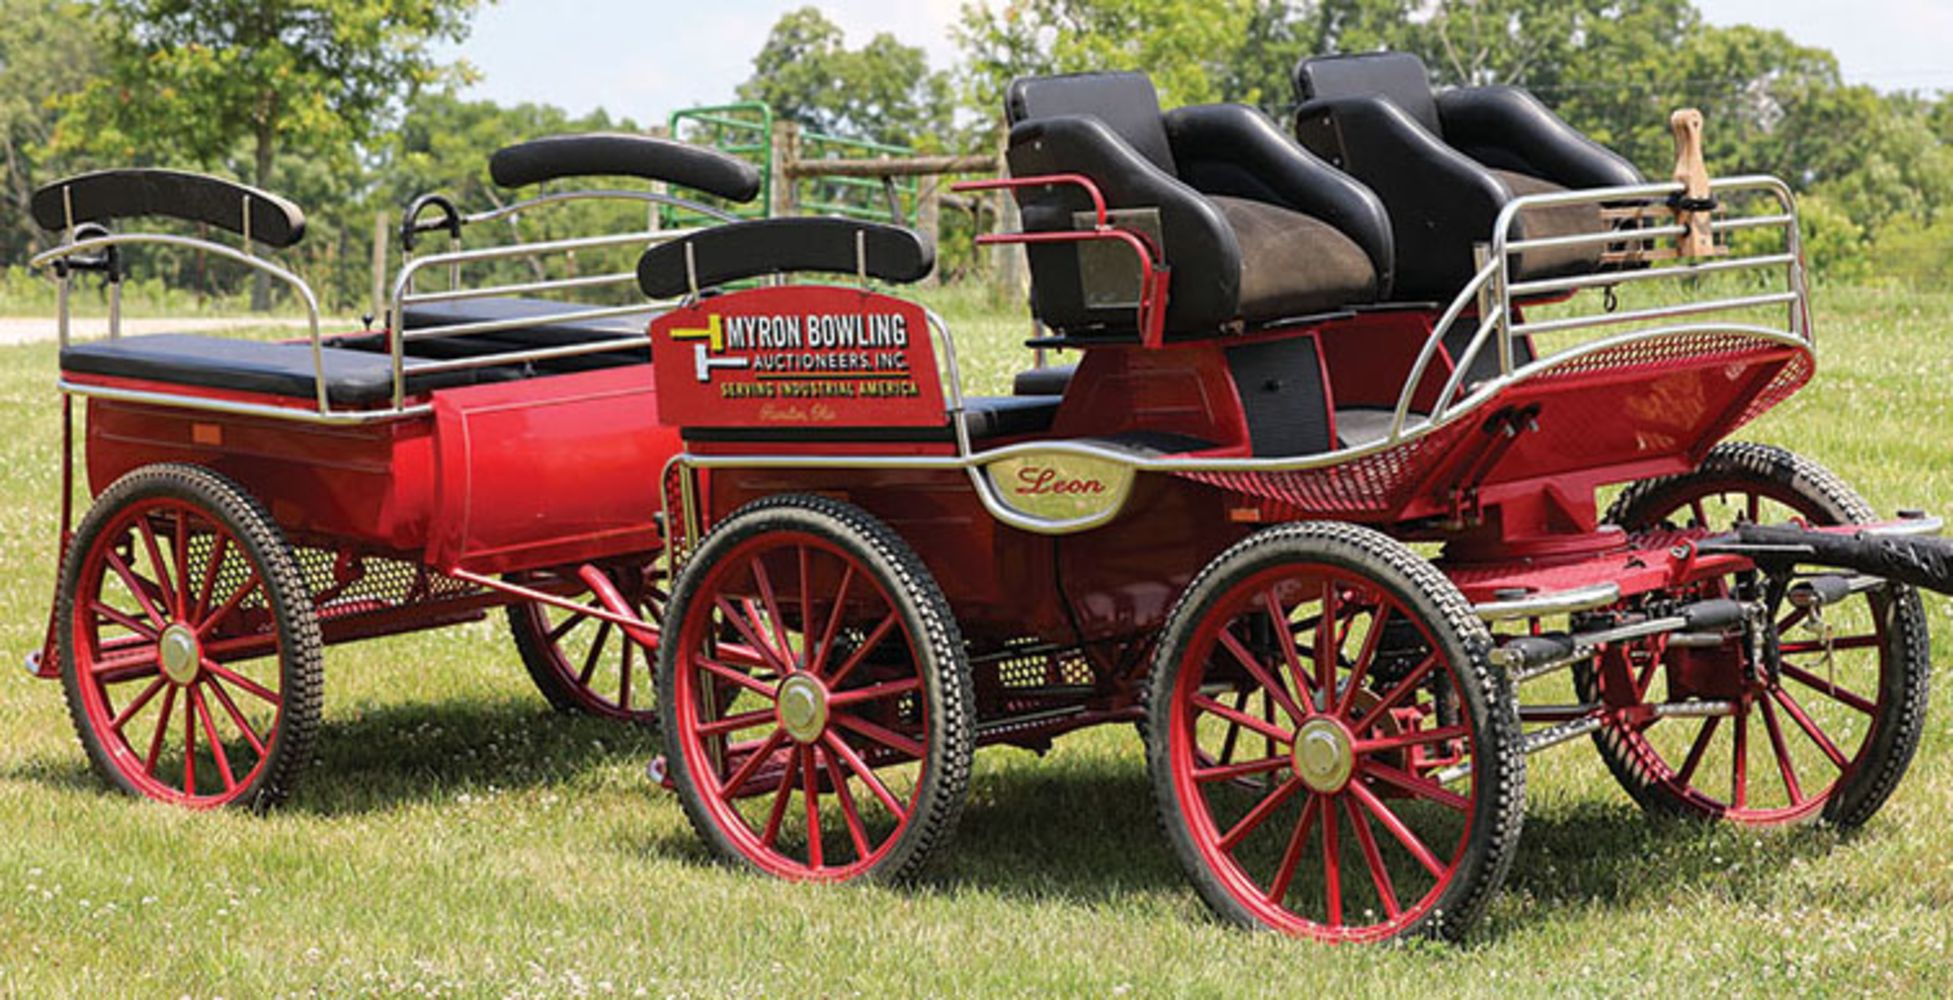 (2) Complete Dispersals - 30-Year Collection of Horse-Drawn Carriages, Wagons, Sleighs & Many Other Items